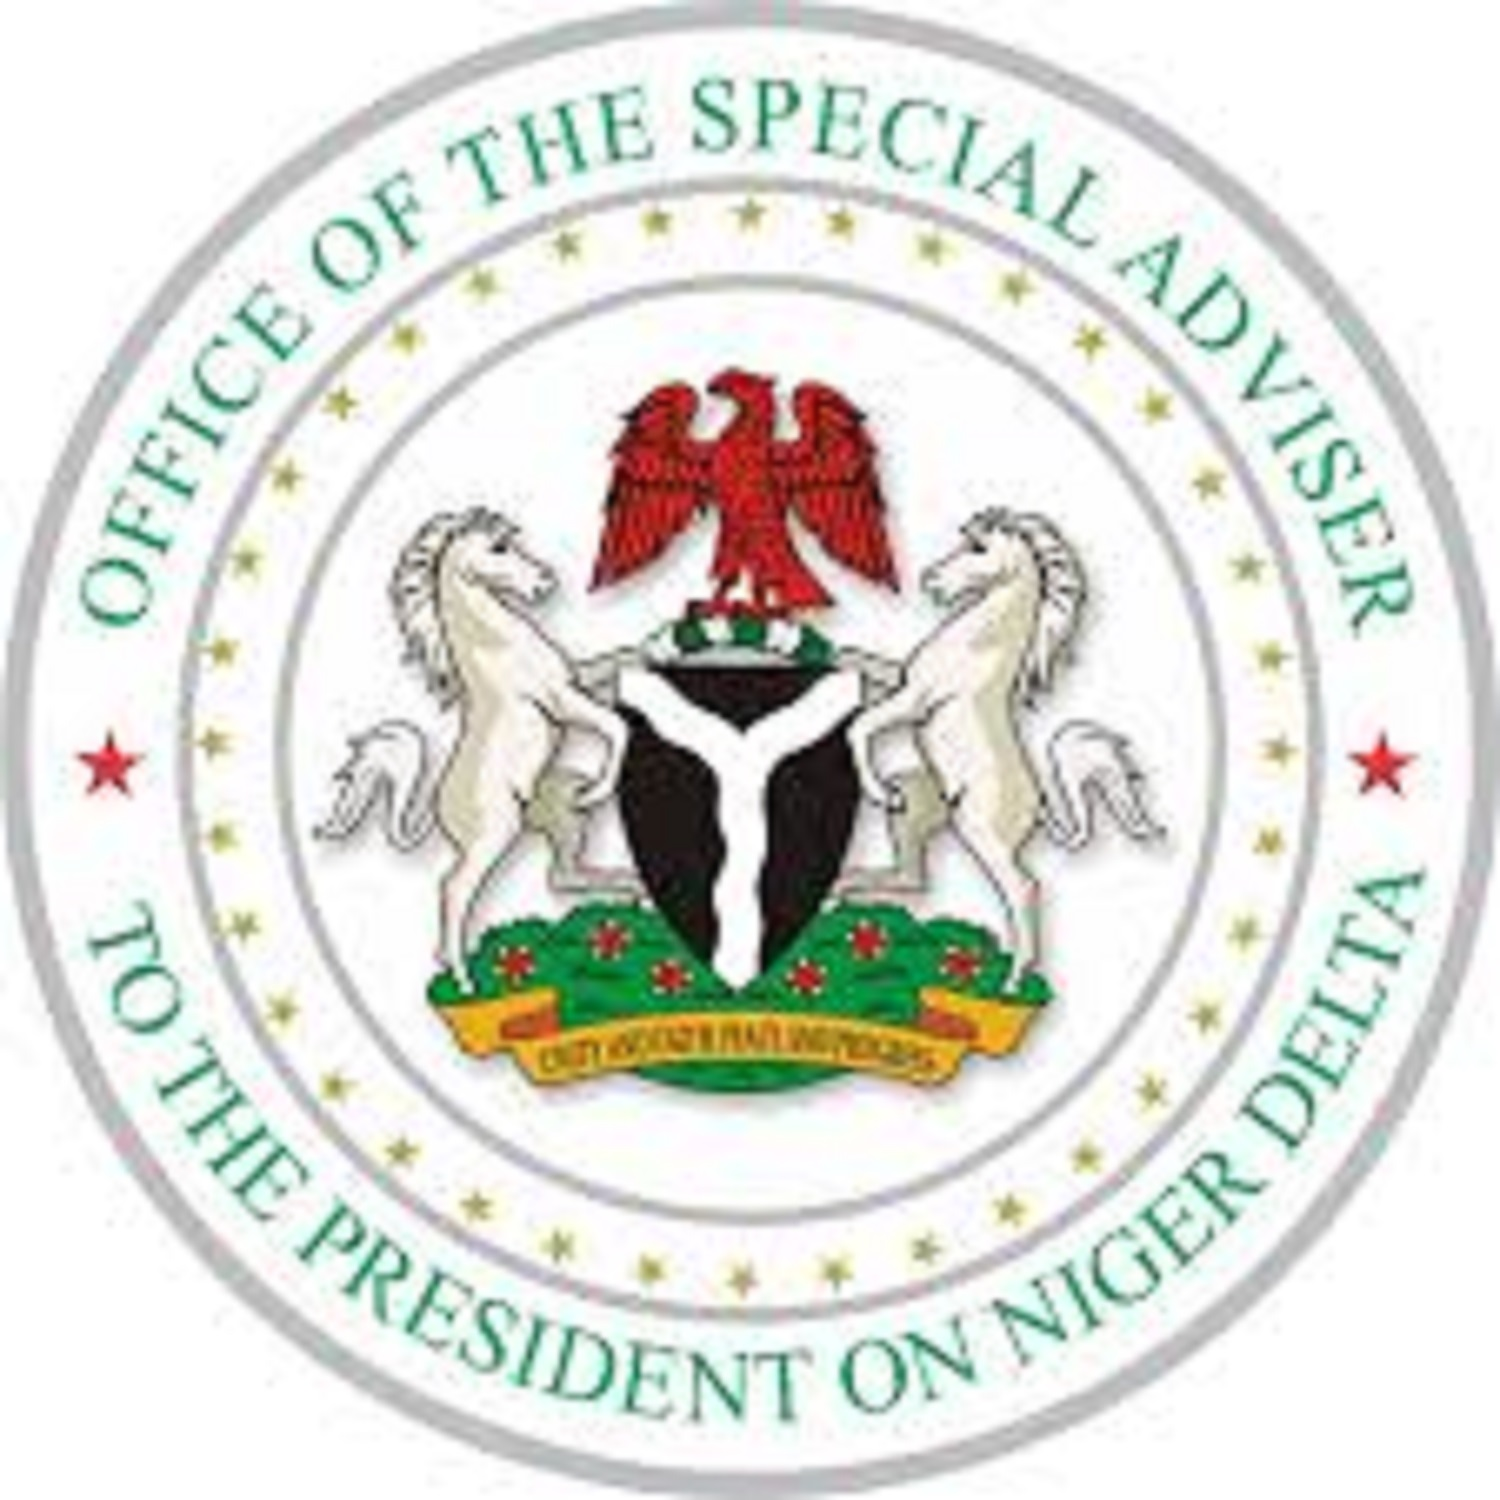 Only Presidency can determine Amnesty terminal date, admit more ex-militants-Dokubo